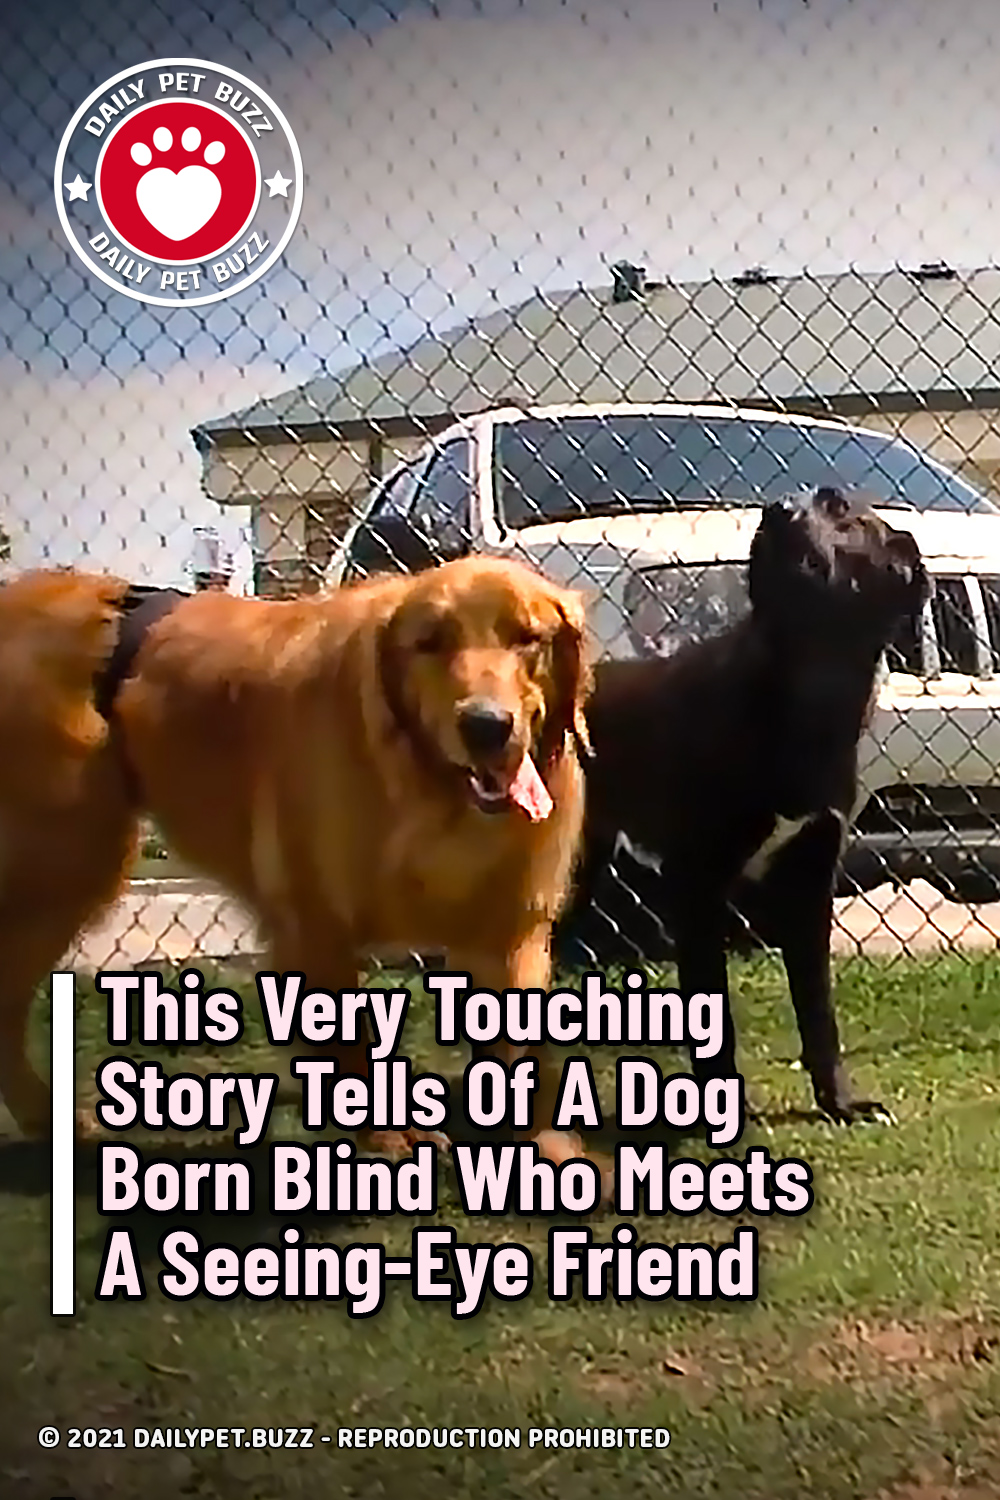 This Very Touching Story Tells Of A Dog Born Blind Who Meets A Seeing-Eye Friend